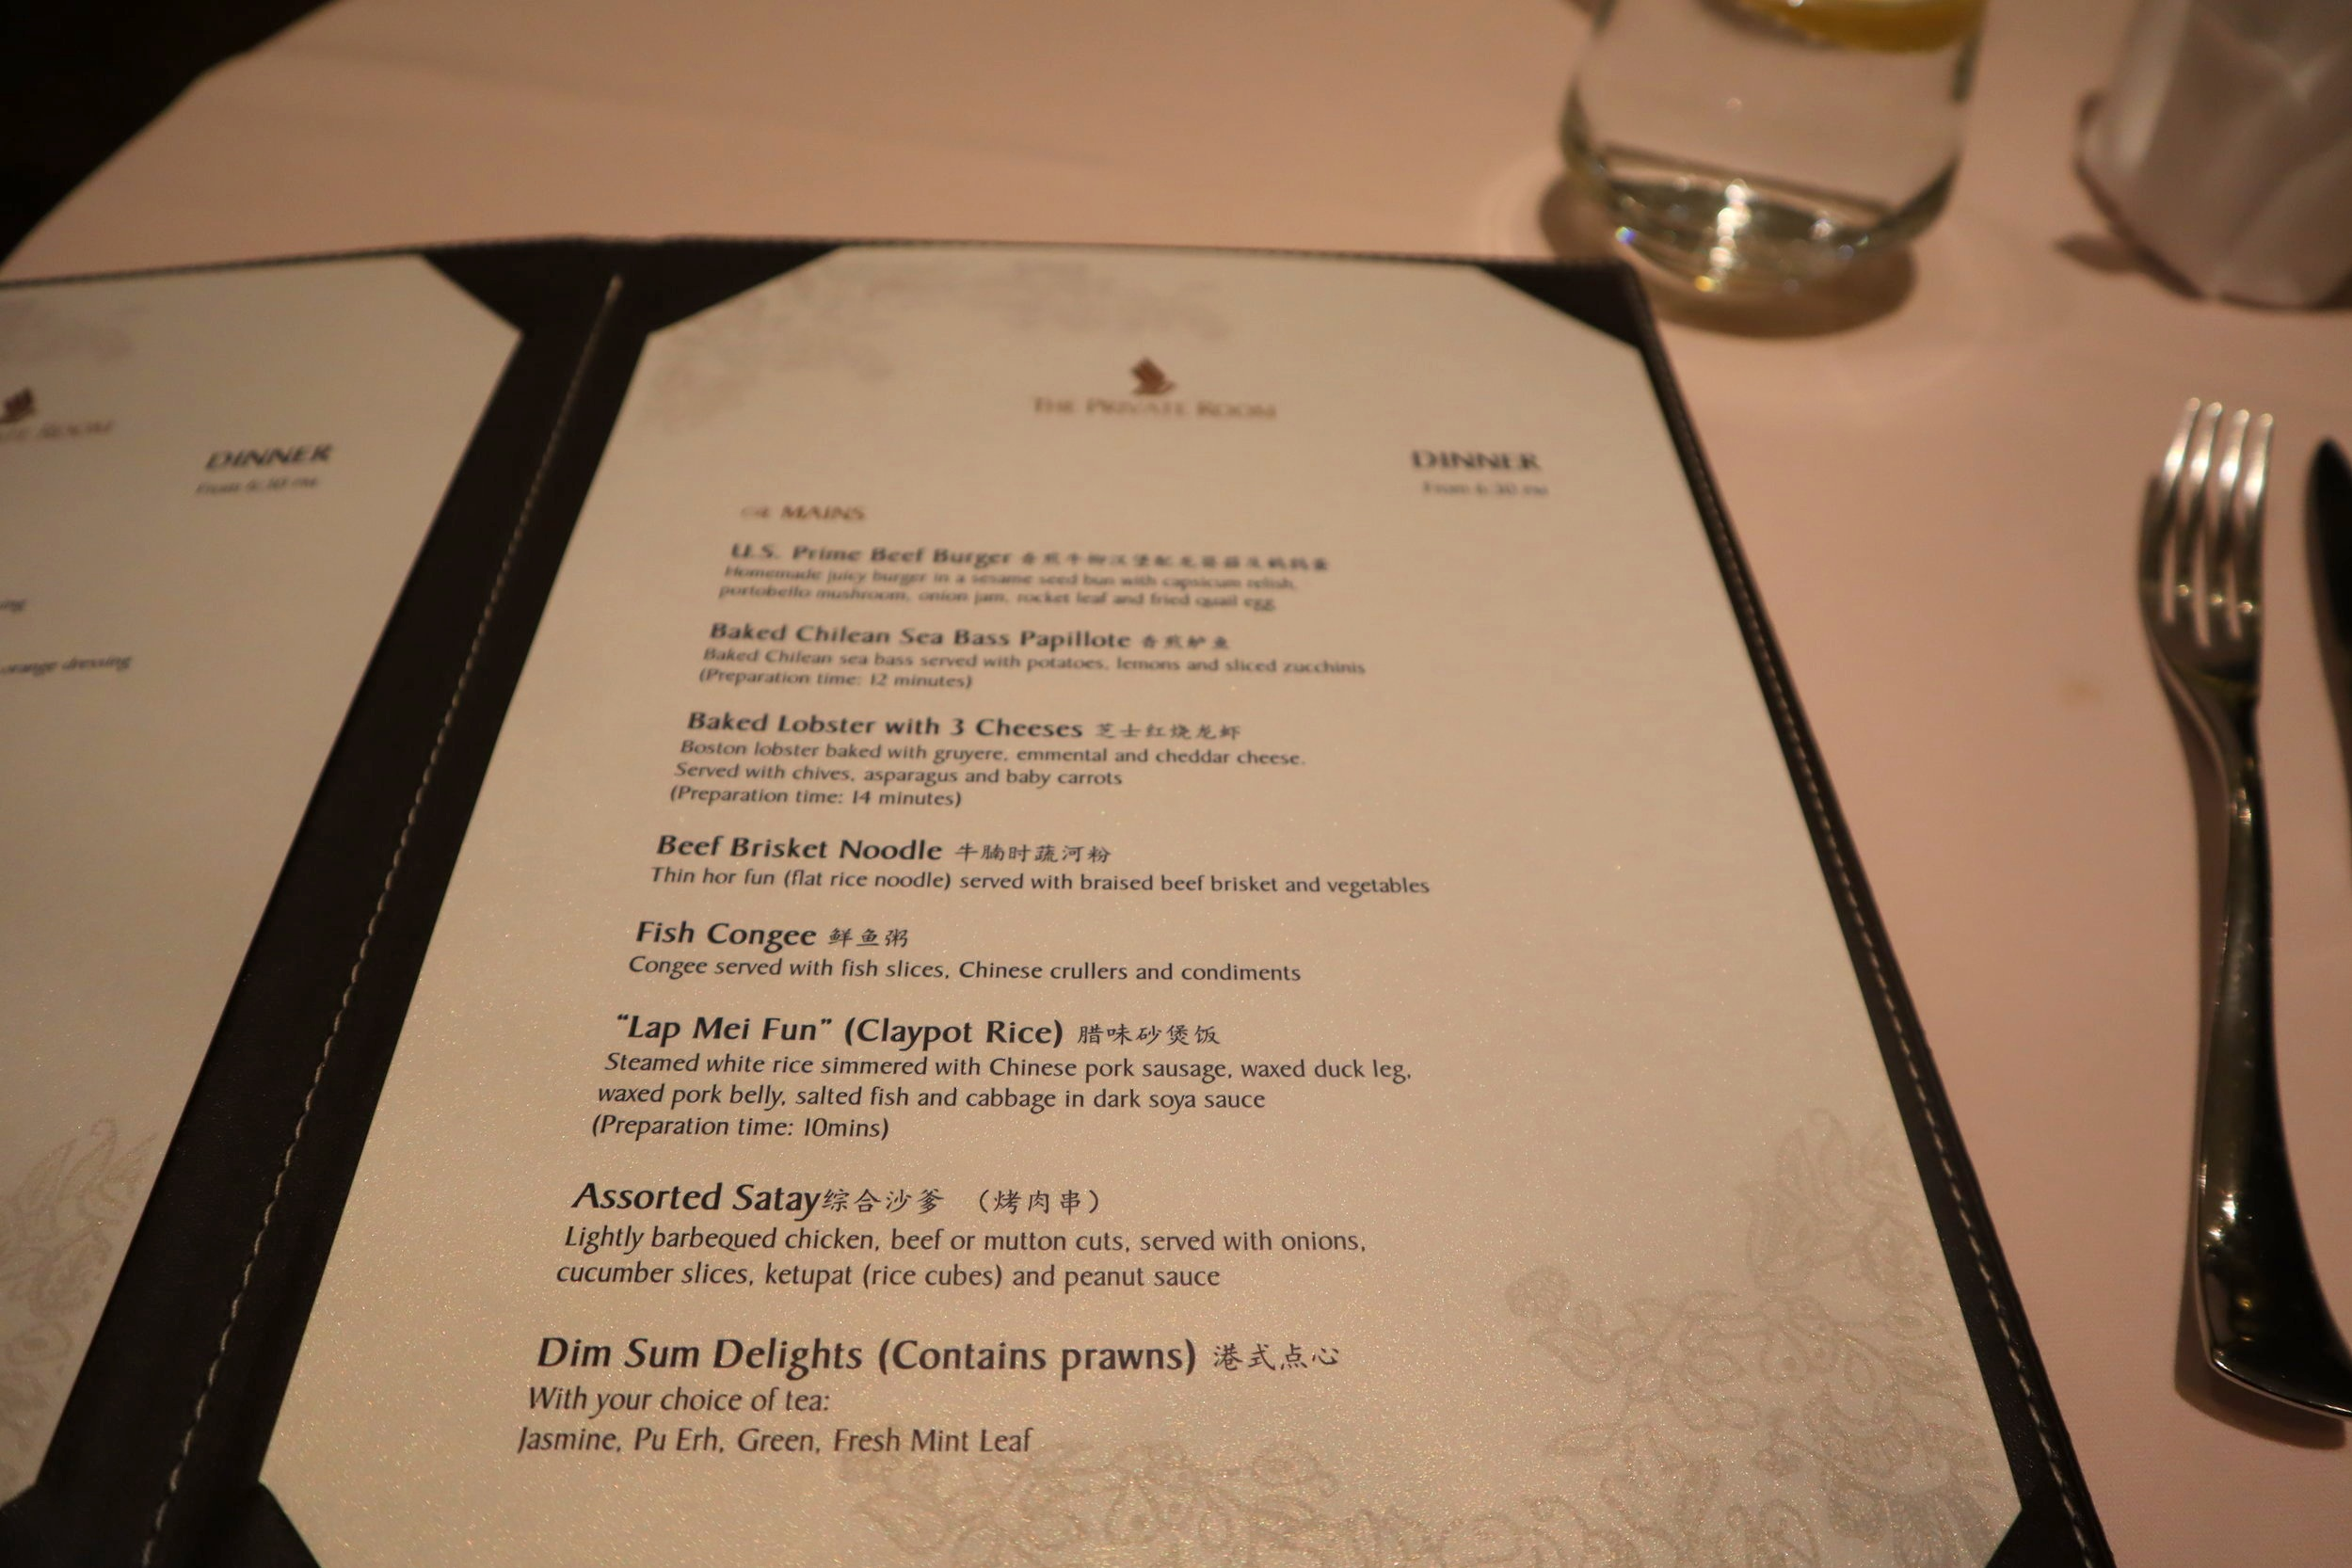 The Private Room by Singapore Airlines – Dinner menu